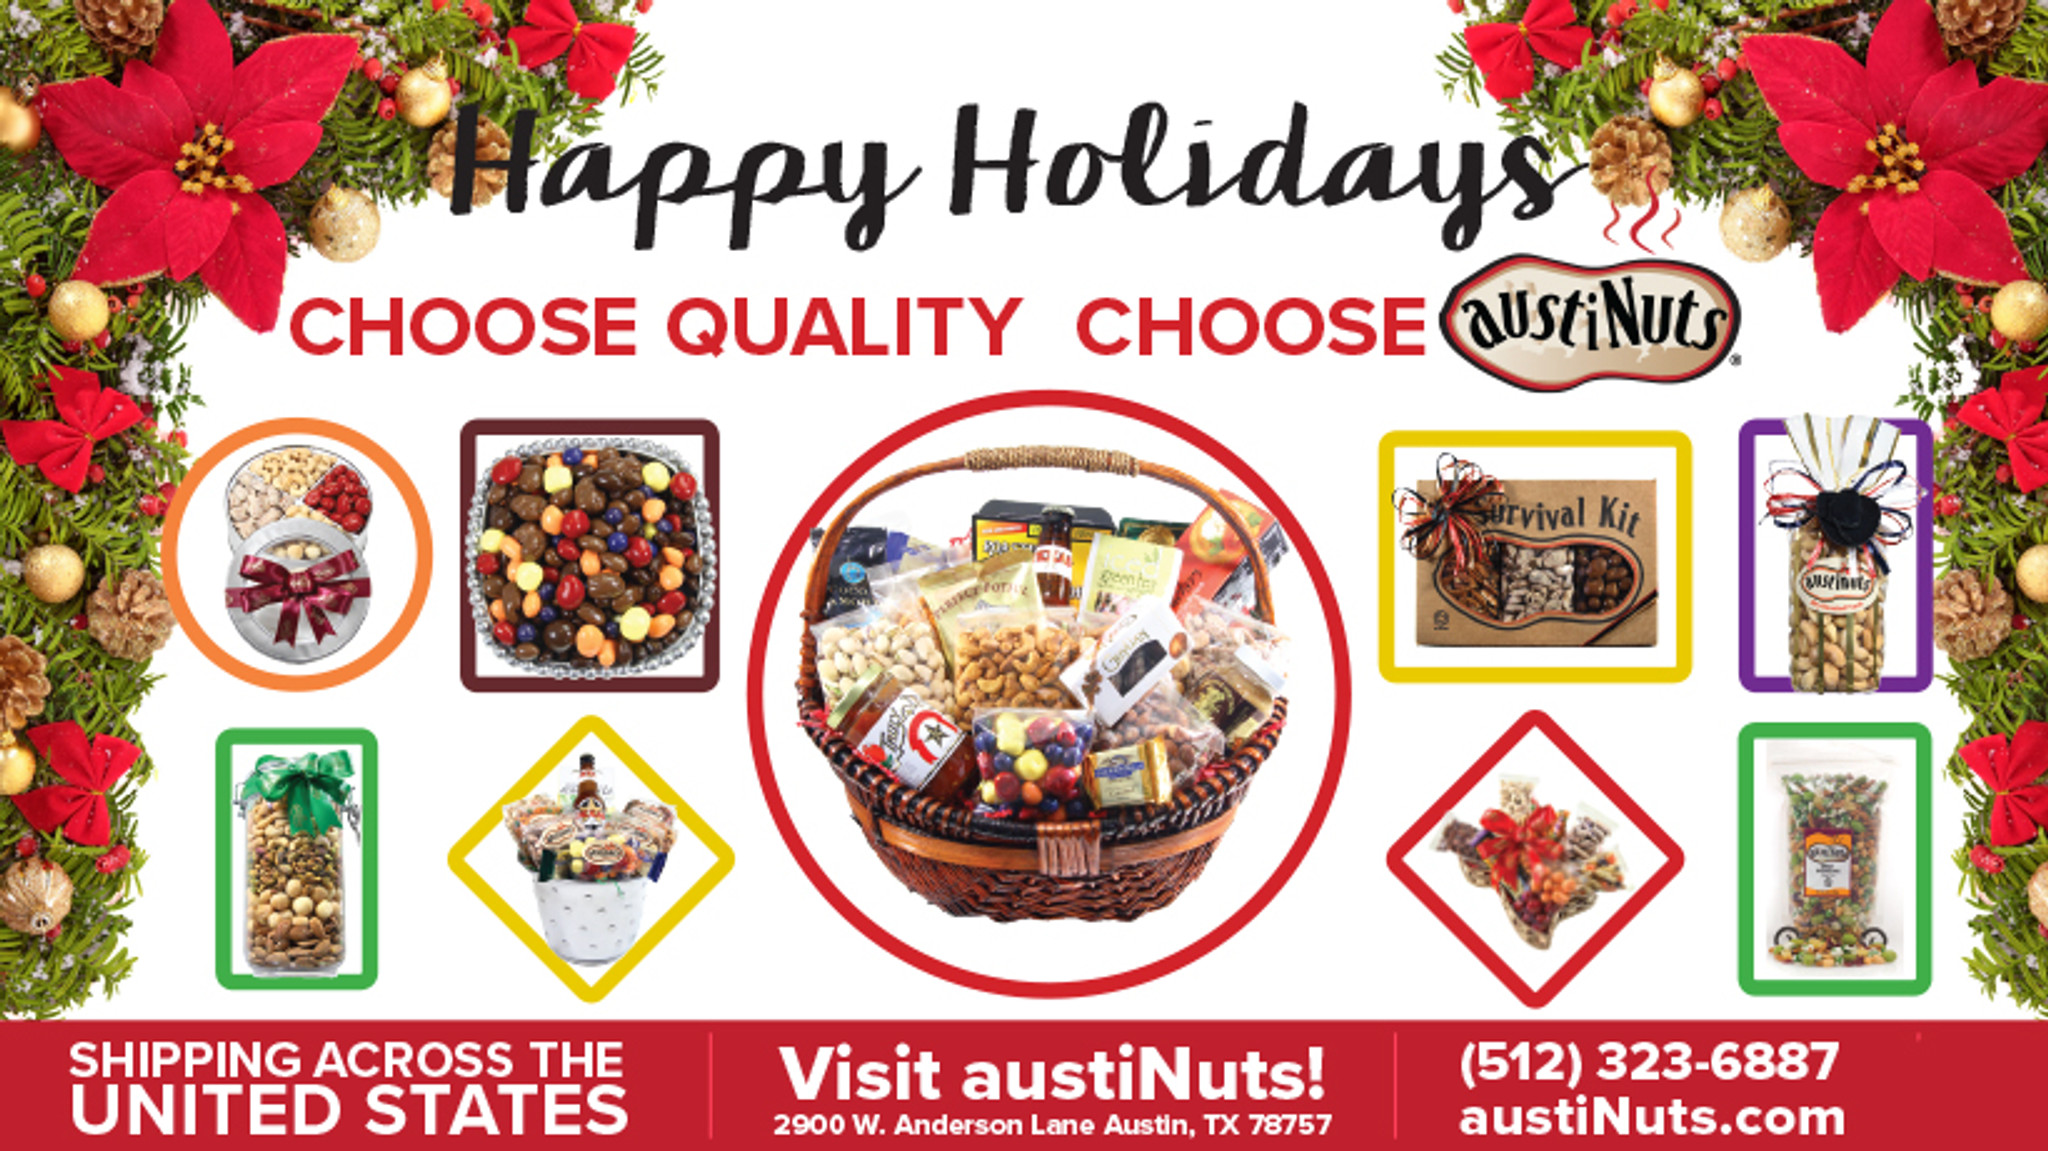 Official austiNuts Holiday Gift Guide - Austin, Texas